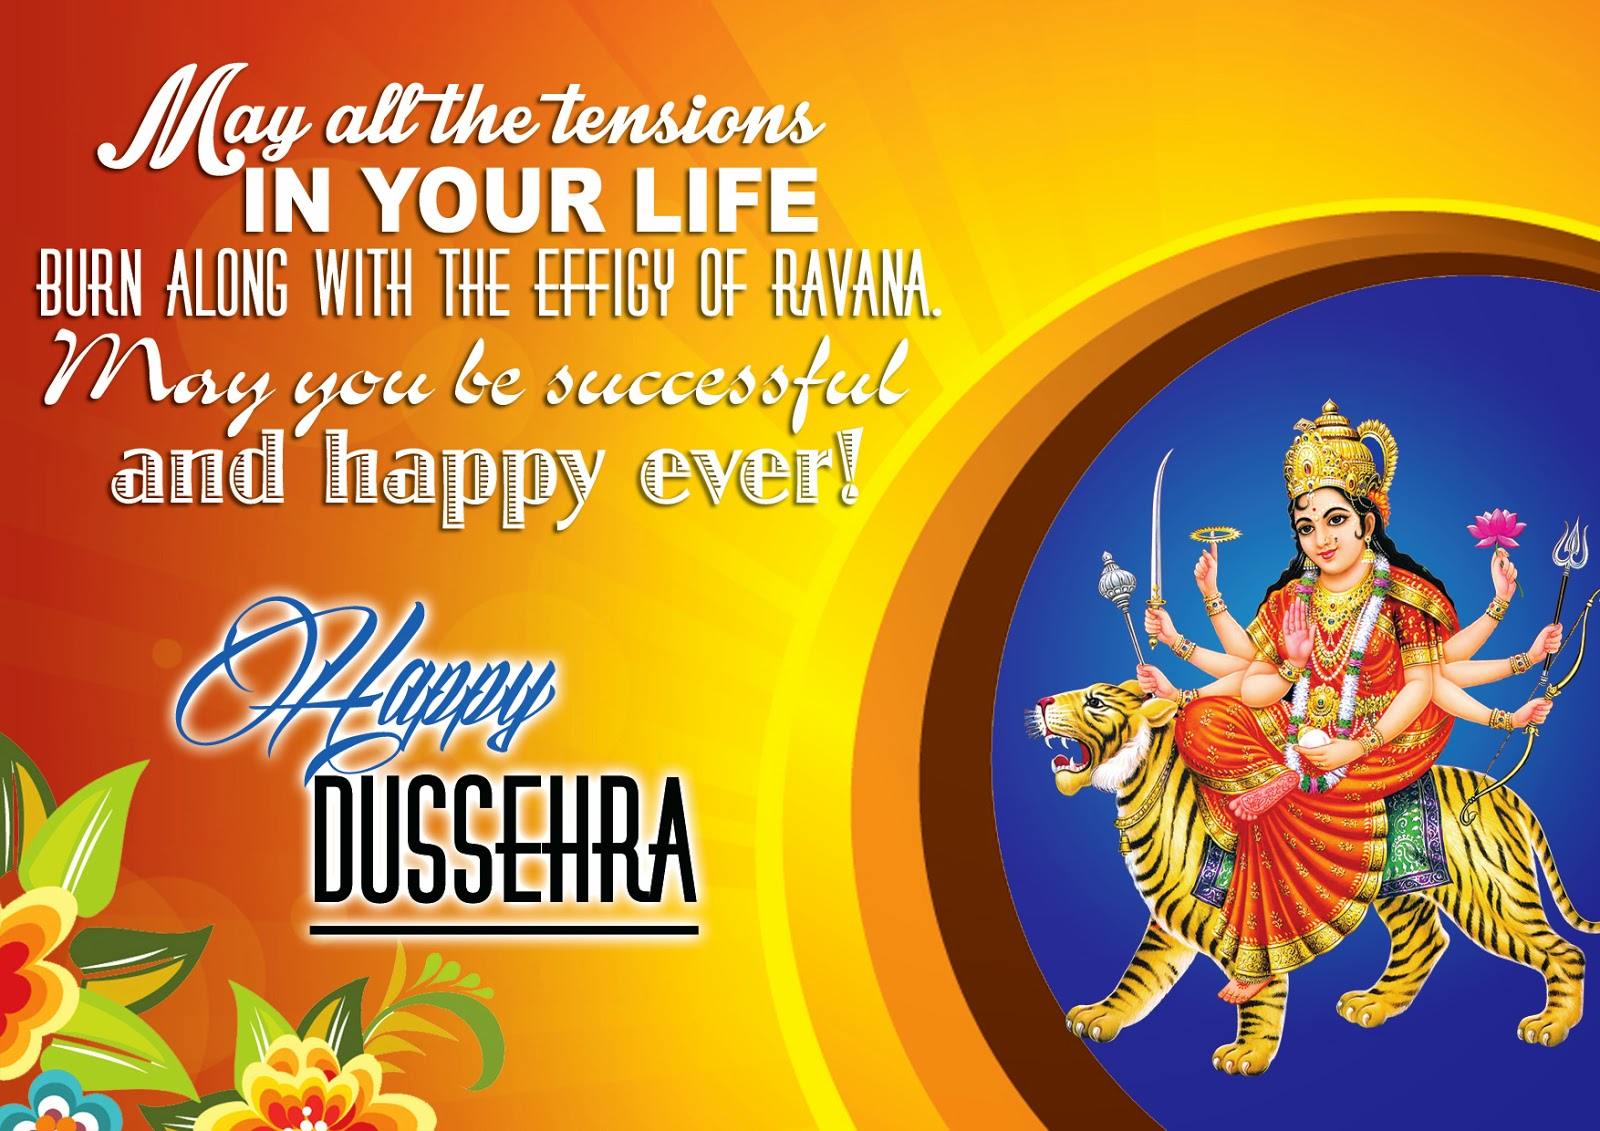 Happy dussehra durga pooja quotes and whishes naveengfx happy dussehra best quotes and greetings wishes wallpapers02 m4hsunfo